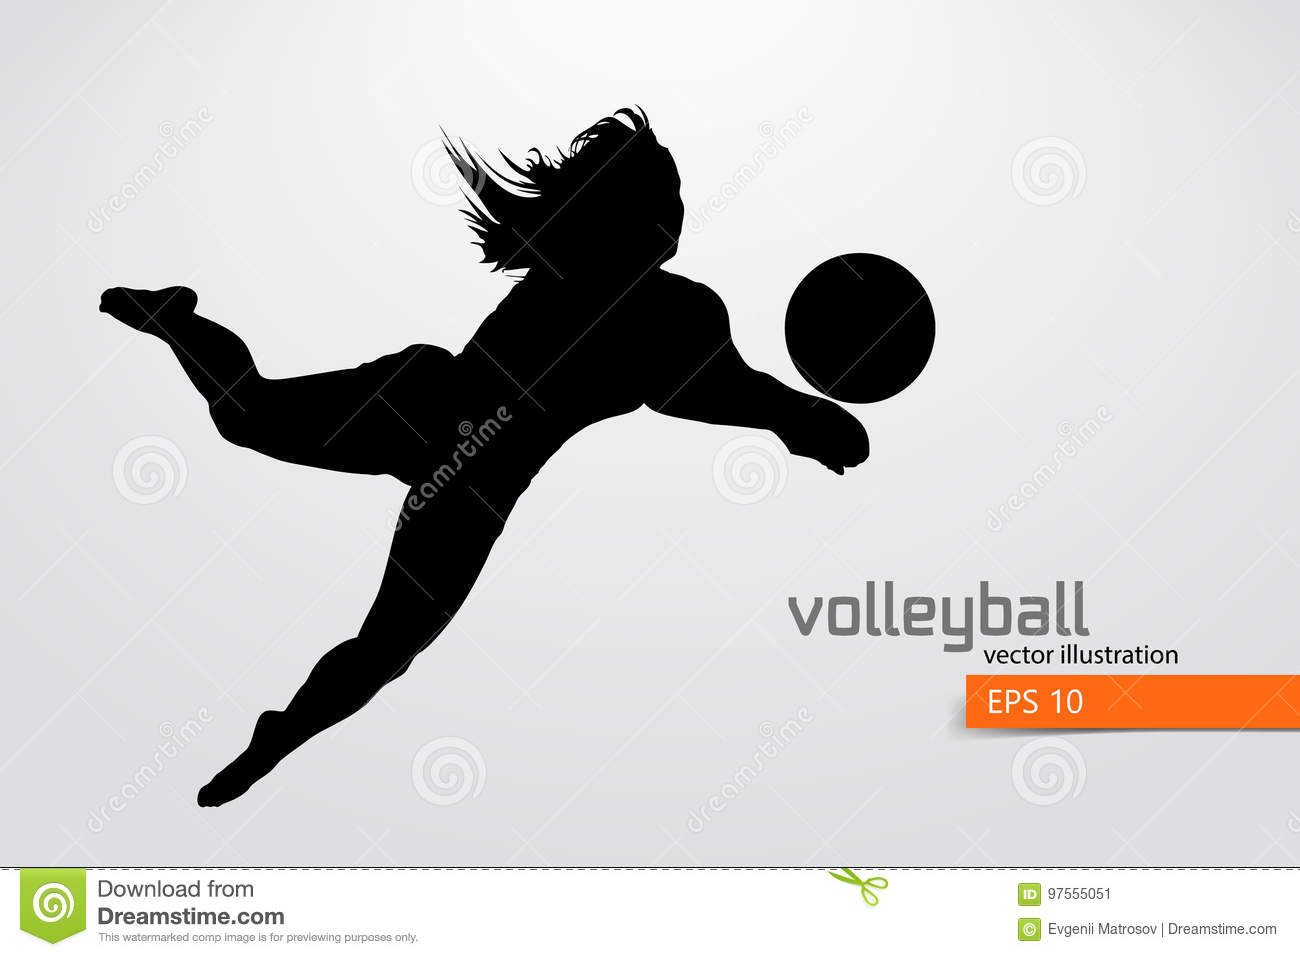 Illustration Abstract Volleyball Player Silhouette: Silhouette Of Volleyball Player. Stock Vector